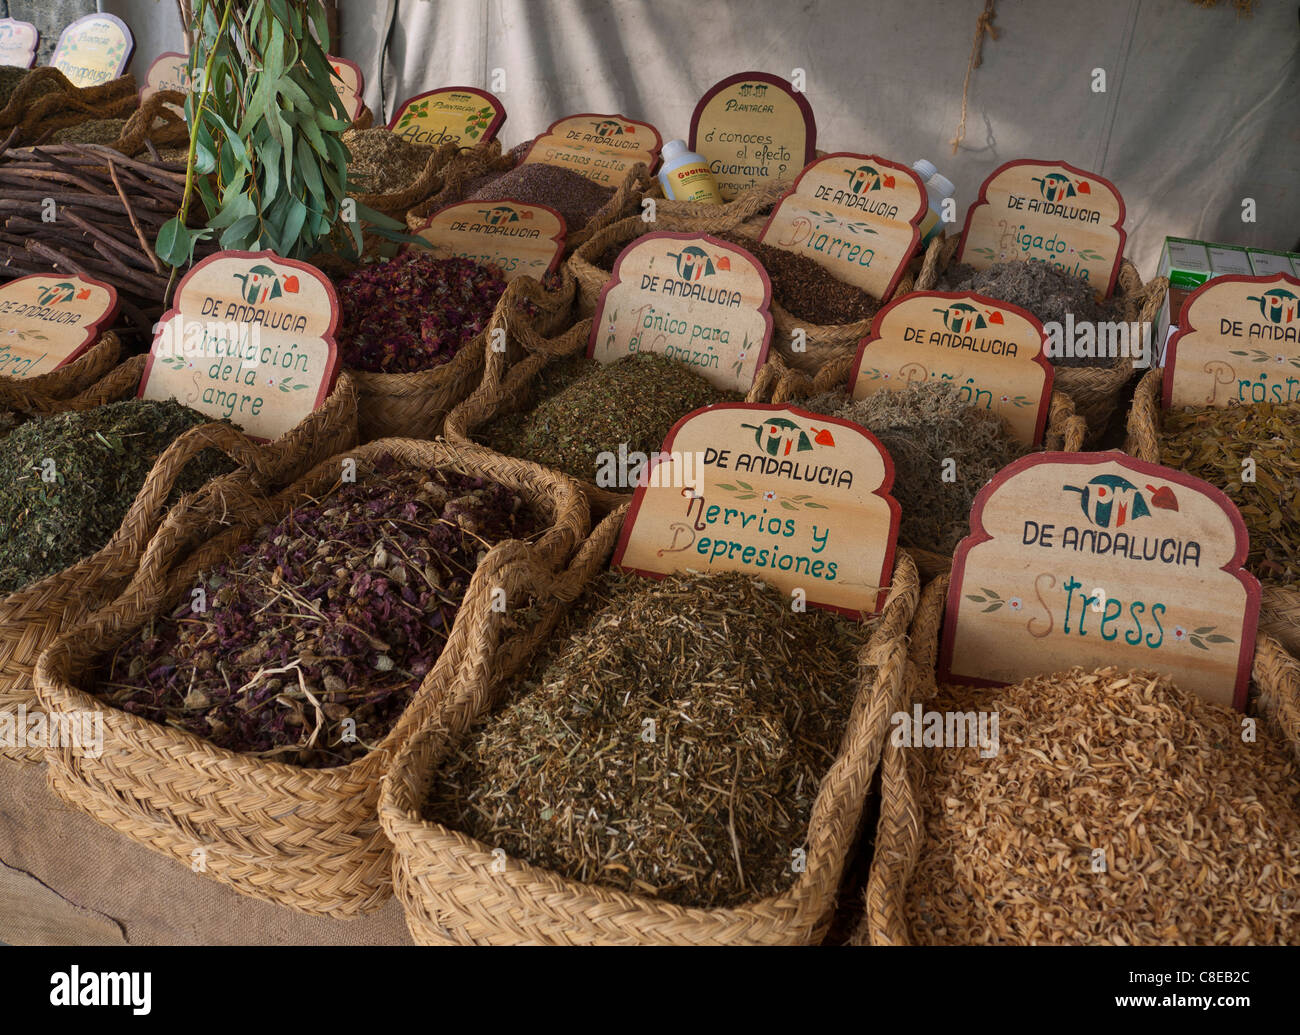 Variety of herbal remedies on display for sale Palma de Mallorca market stall  Spain - Stock Image